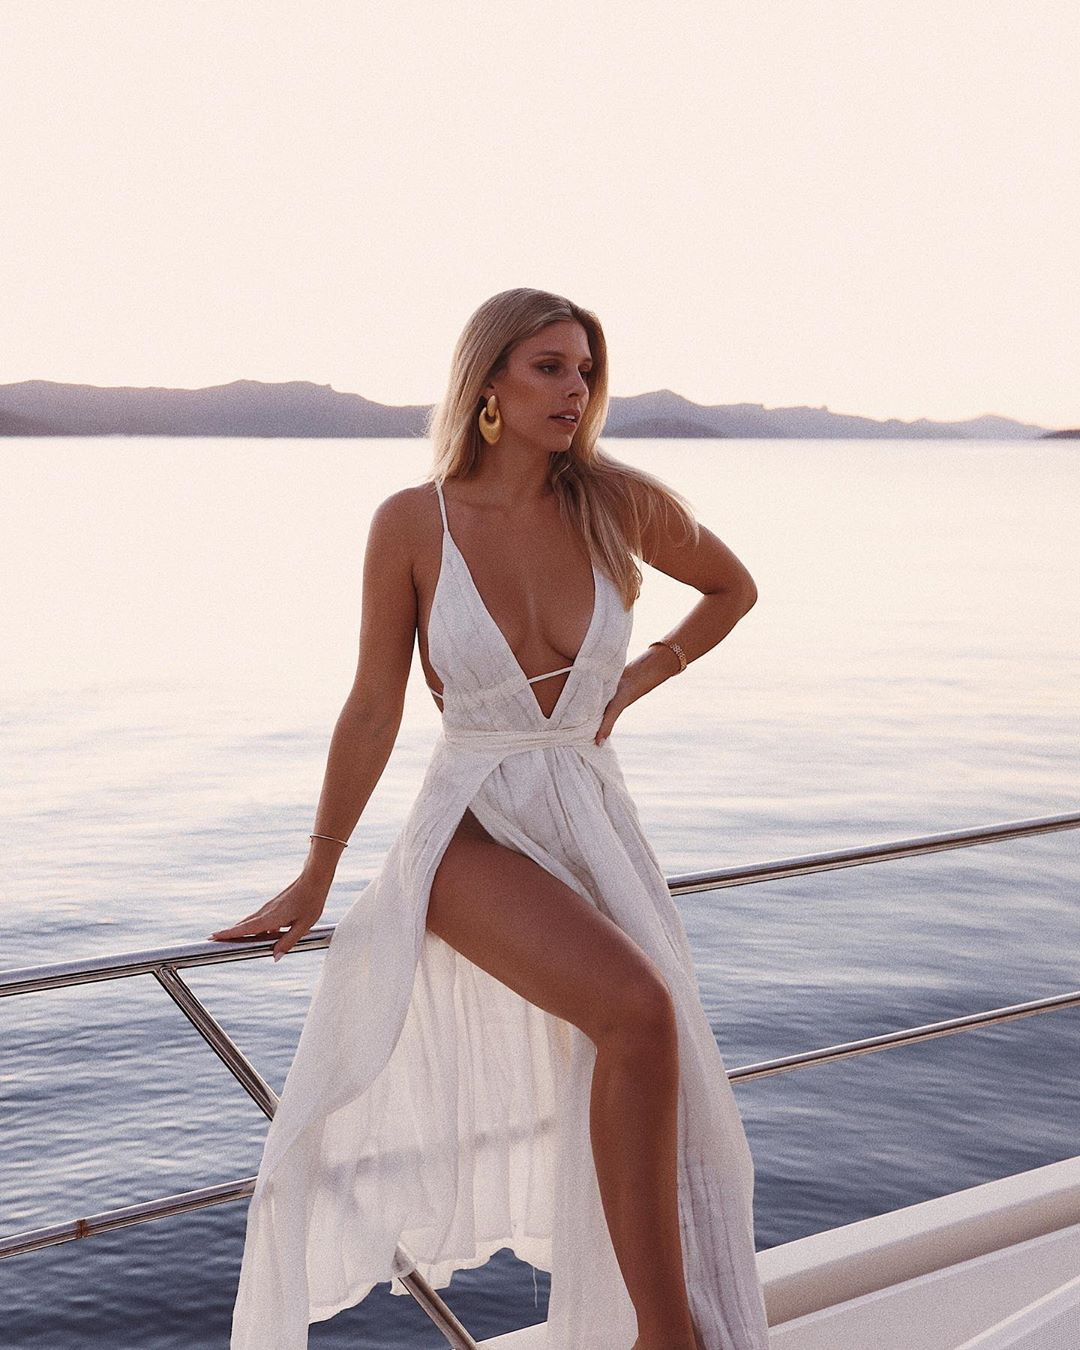 Natasha Oakley rocking a Off white Cult Gaia maxi dress with a linen material, spaghetti straps, cinched waist and flared hem